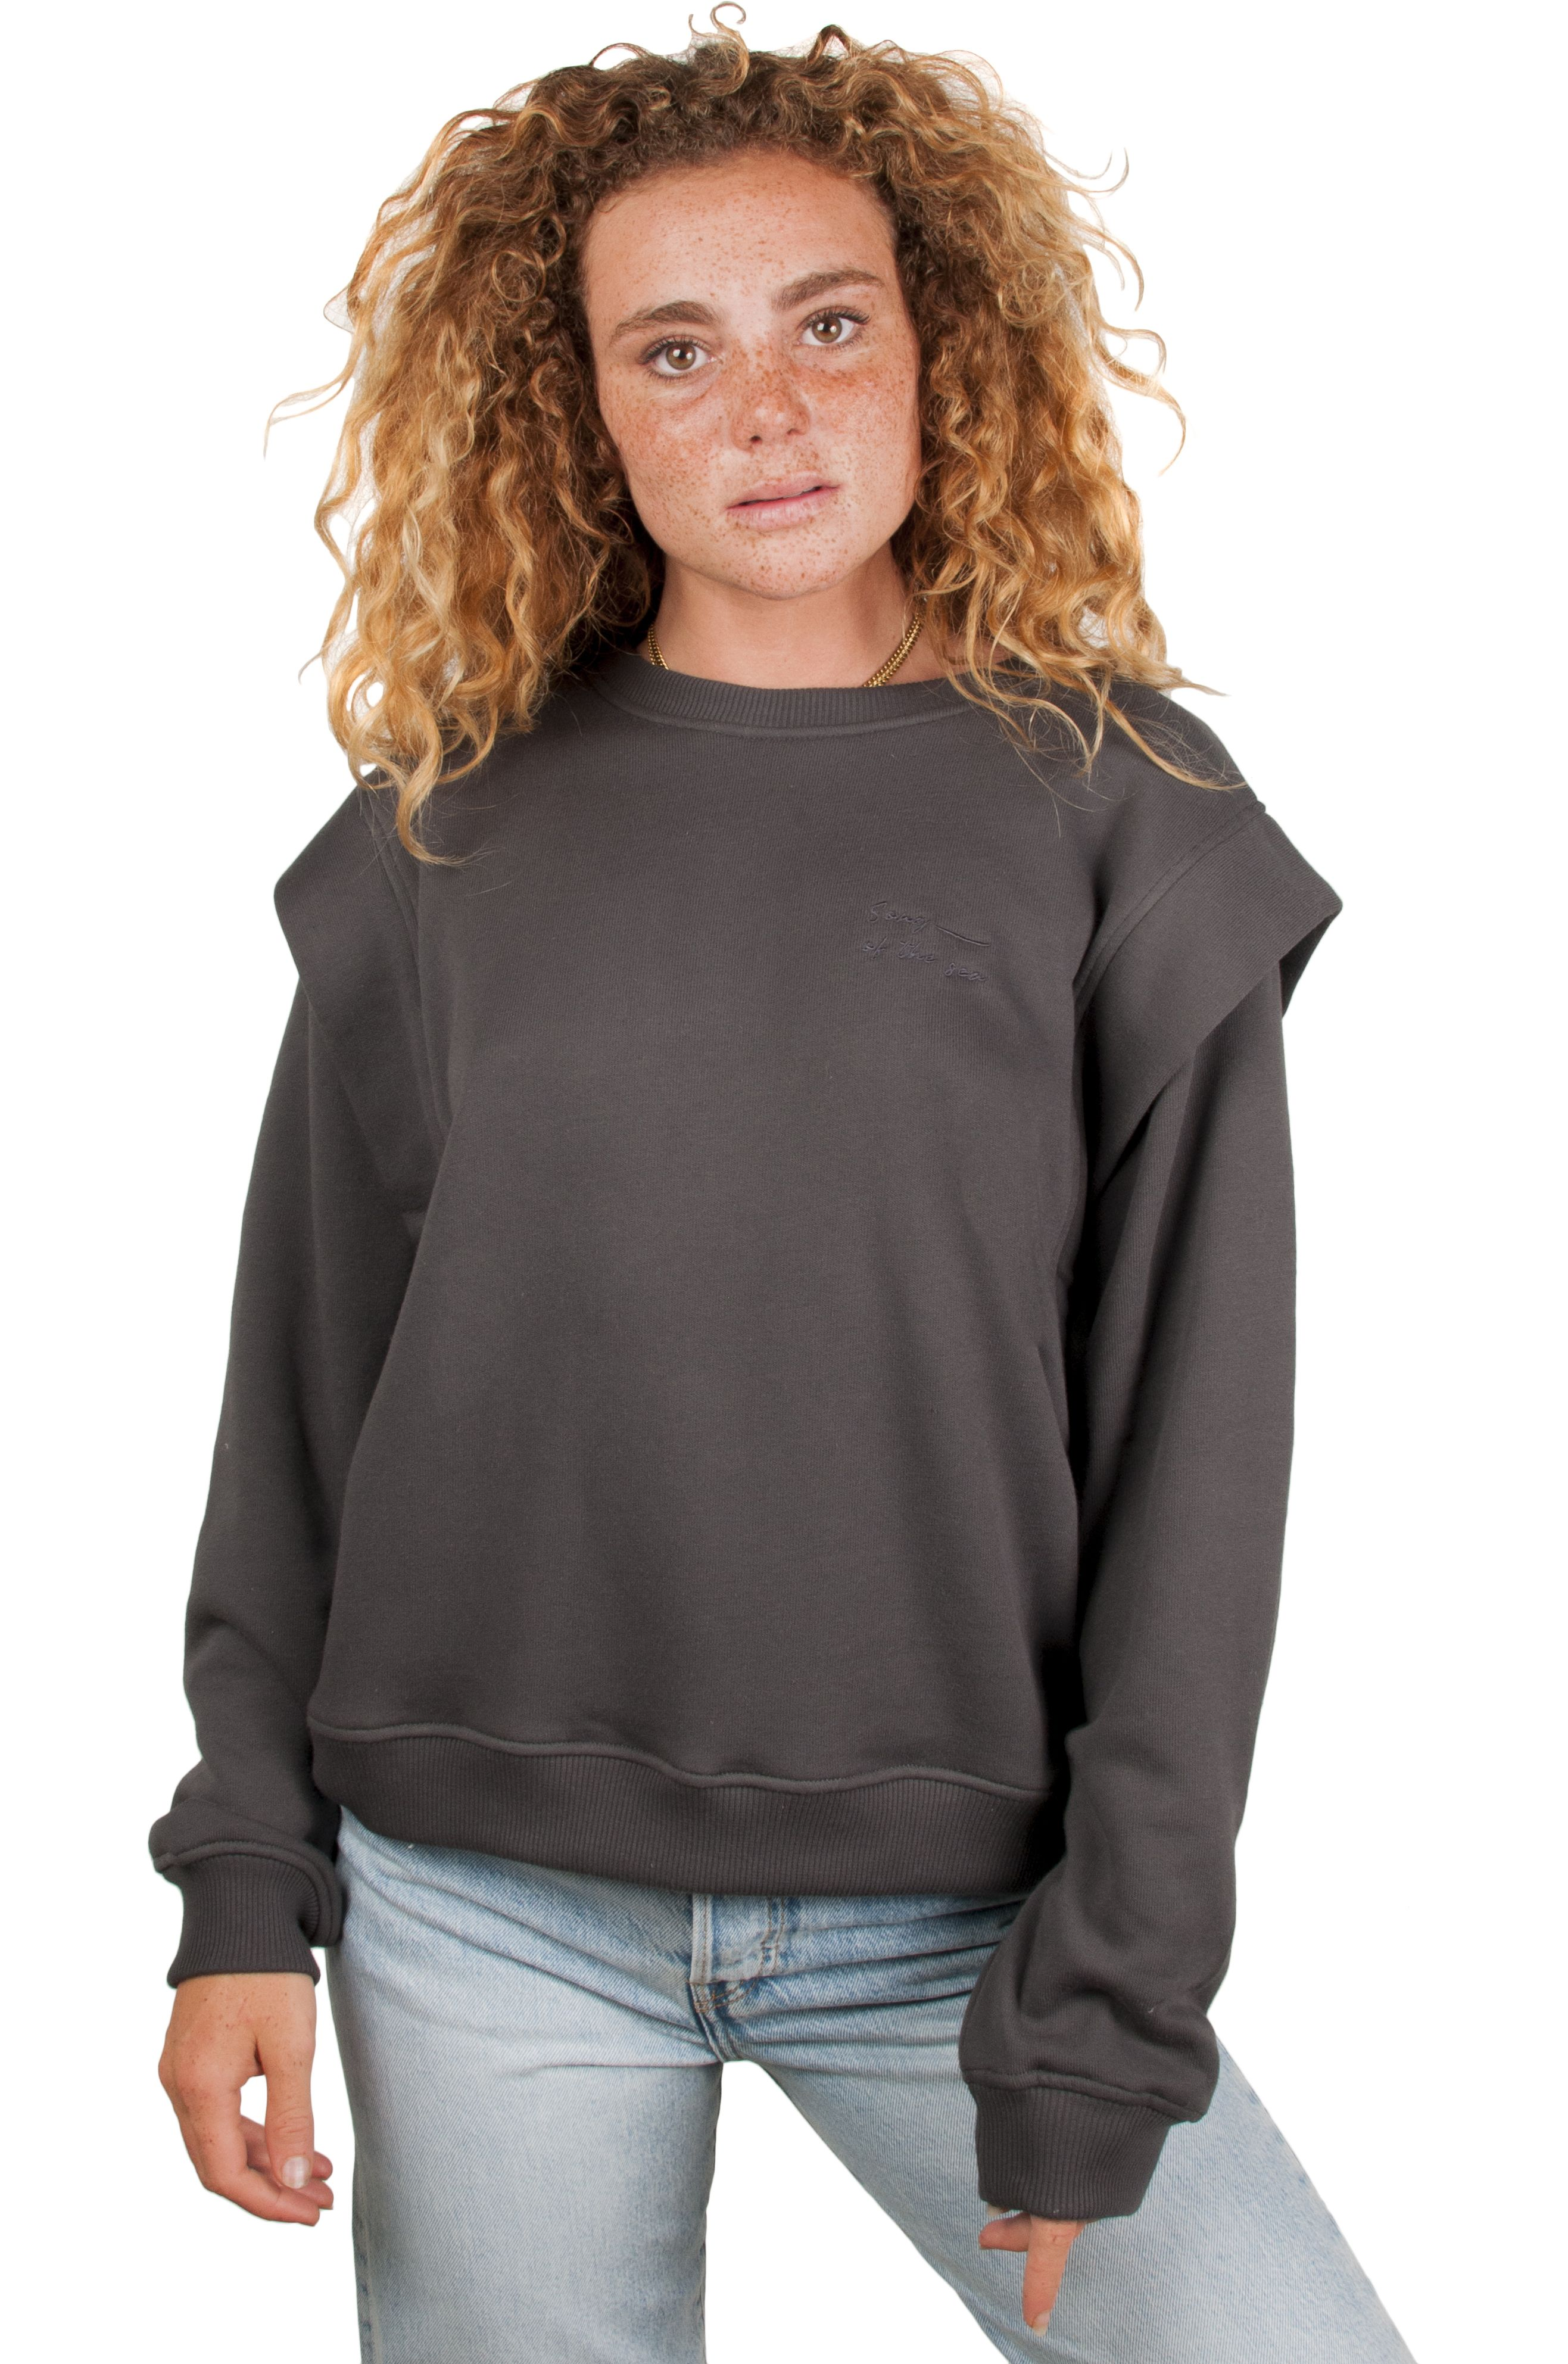 Ericeira Surf Skate Crew Sweat COOL Charcoal